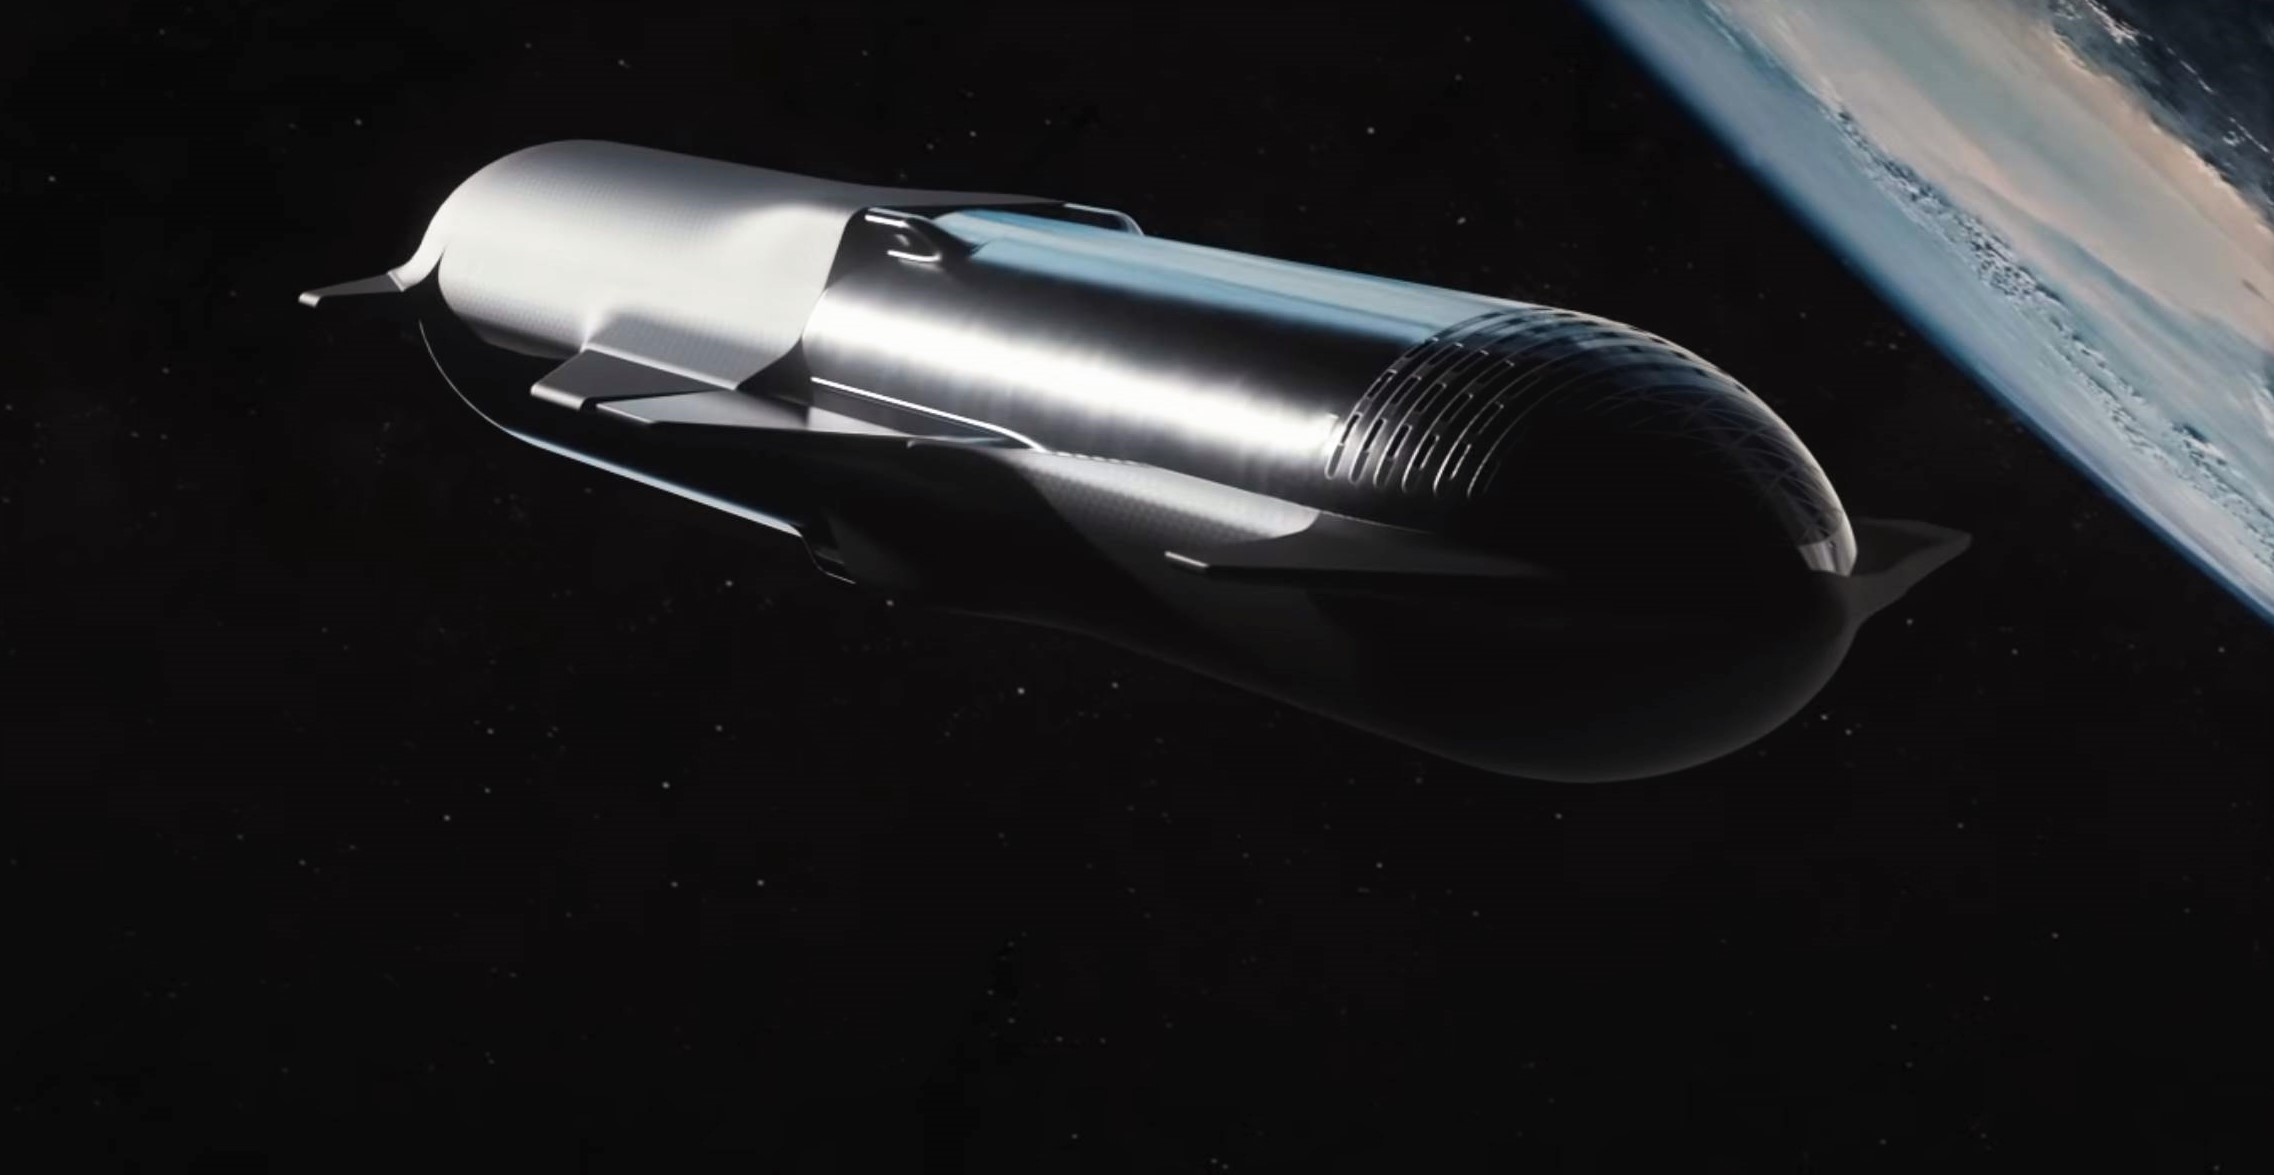 Starship Super Heavy 2019 (SpaceX) refueling 7 crop 2